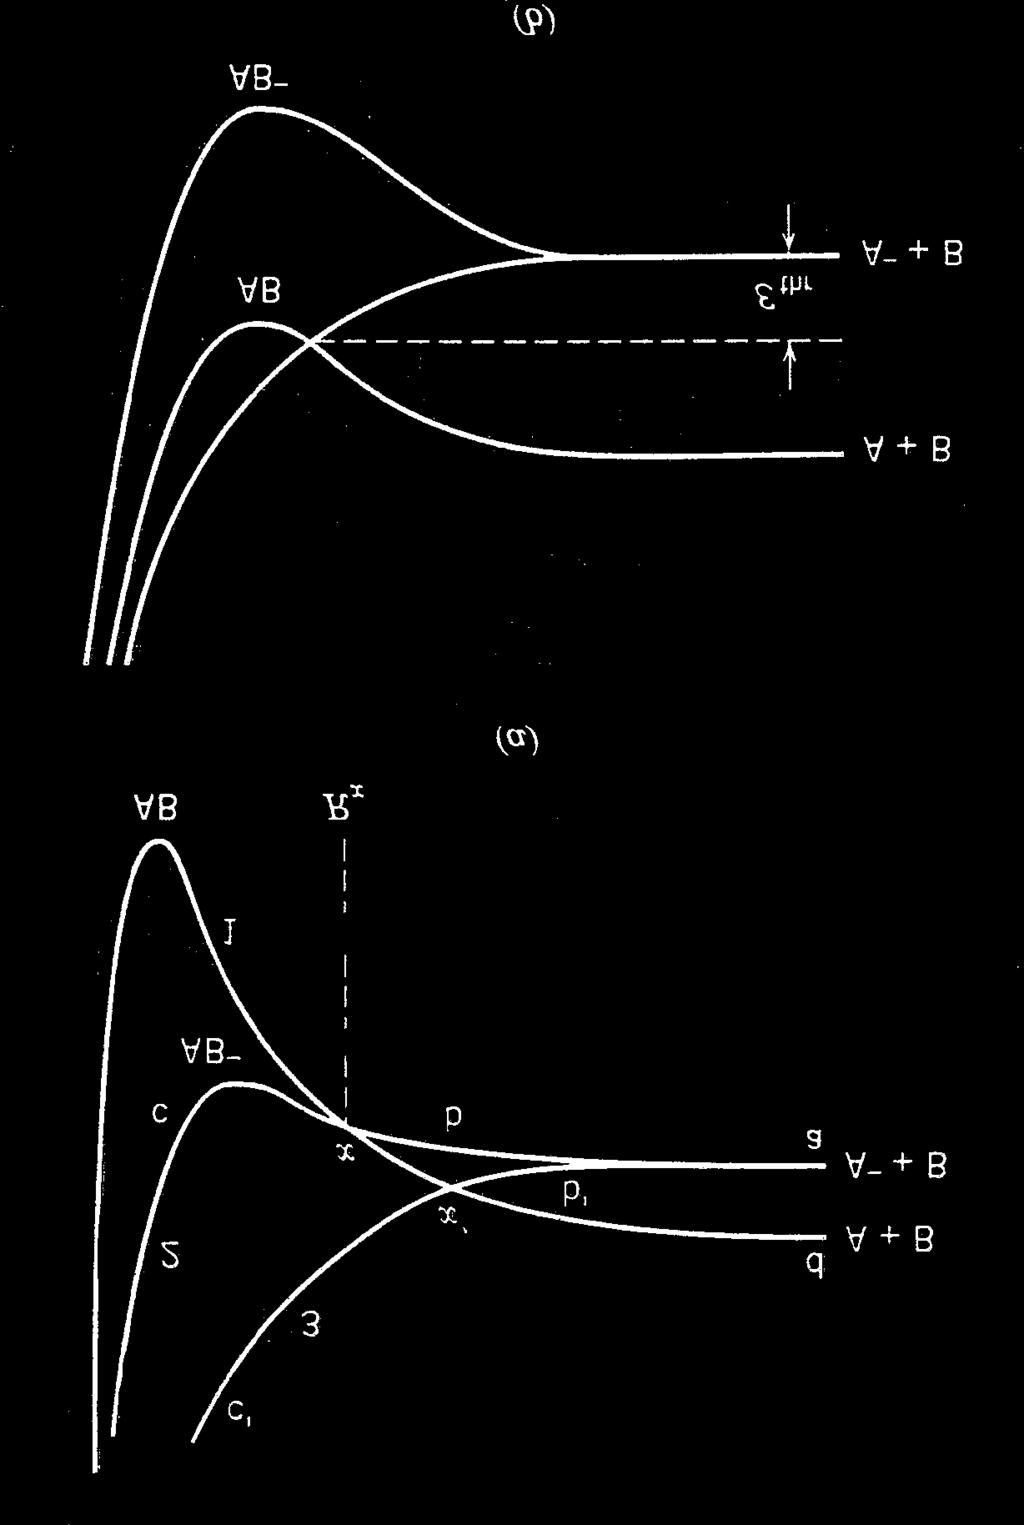 Principles Of Plasma Processing Pdf Sgm 1 Explor 1000g Molecular Collisions And Spectra 143 Fig 11 Nonresonant Charge Transfer Processes A